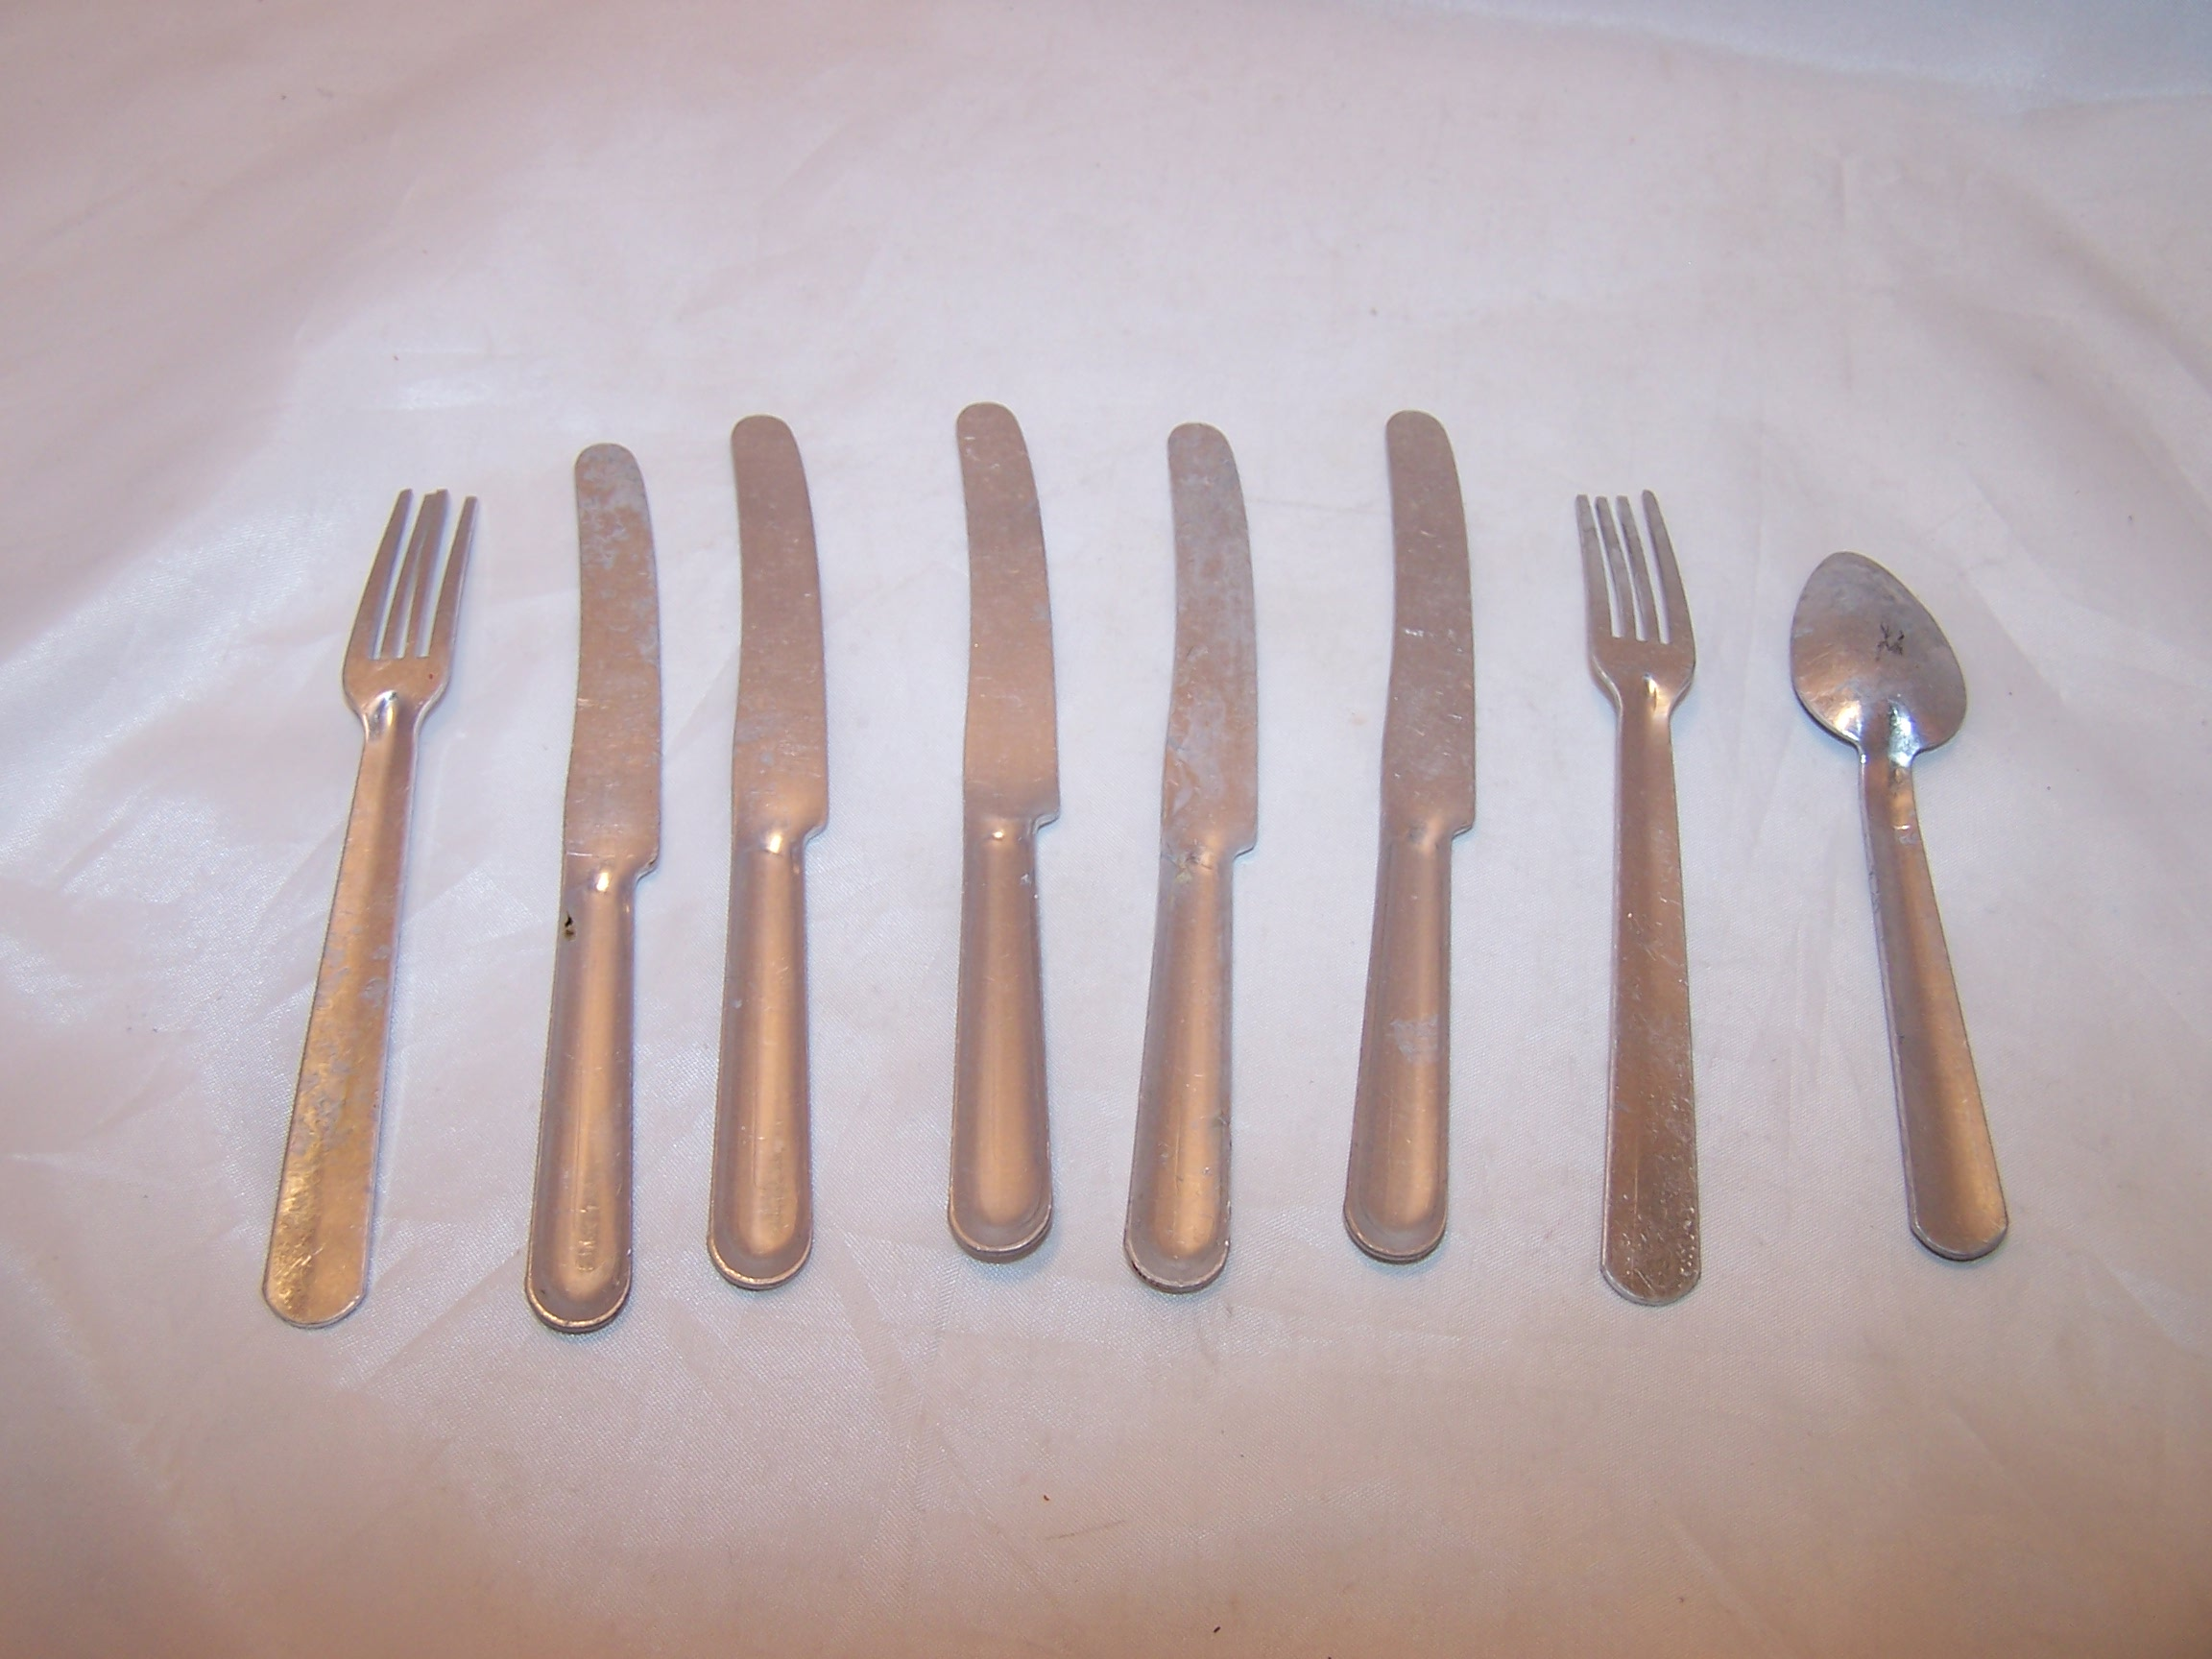 Image 1 of Toy Utensils, Aluminum, Vintage Toy, Group B